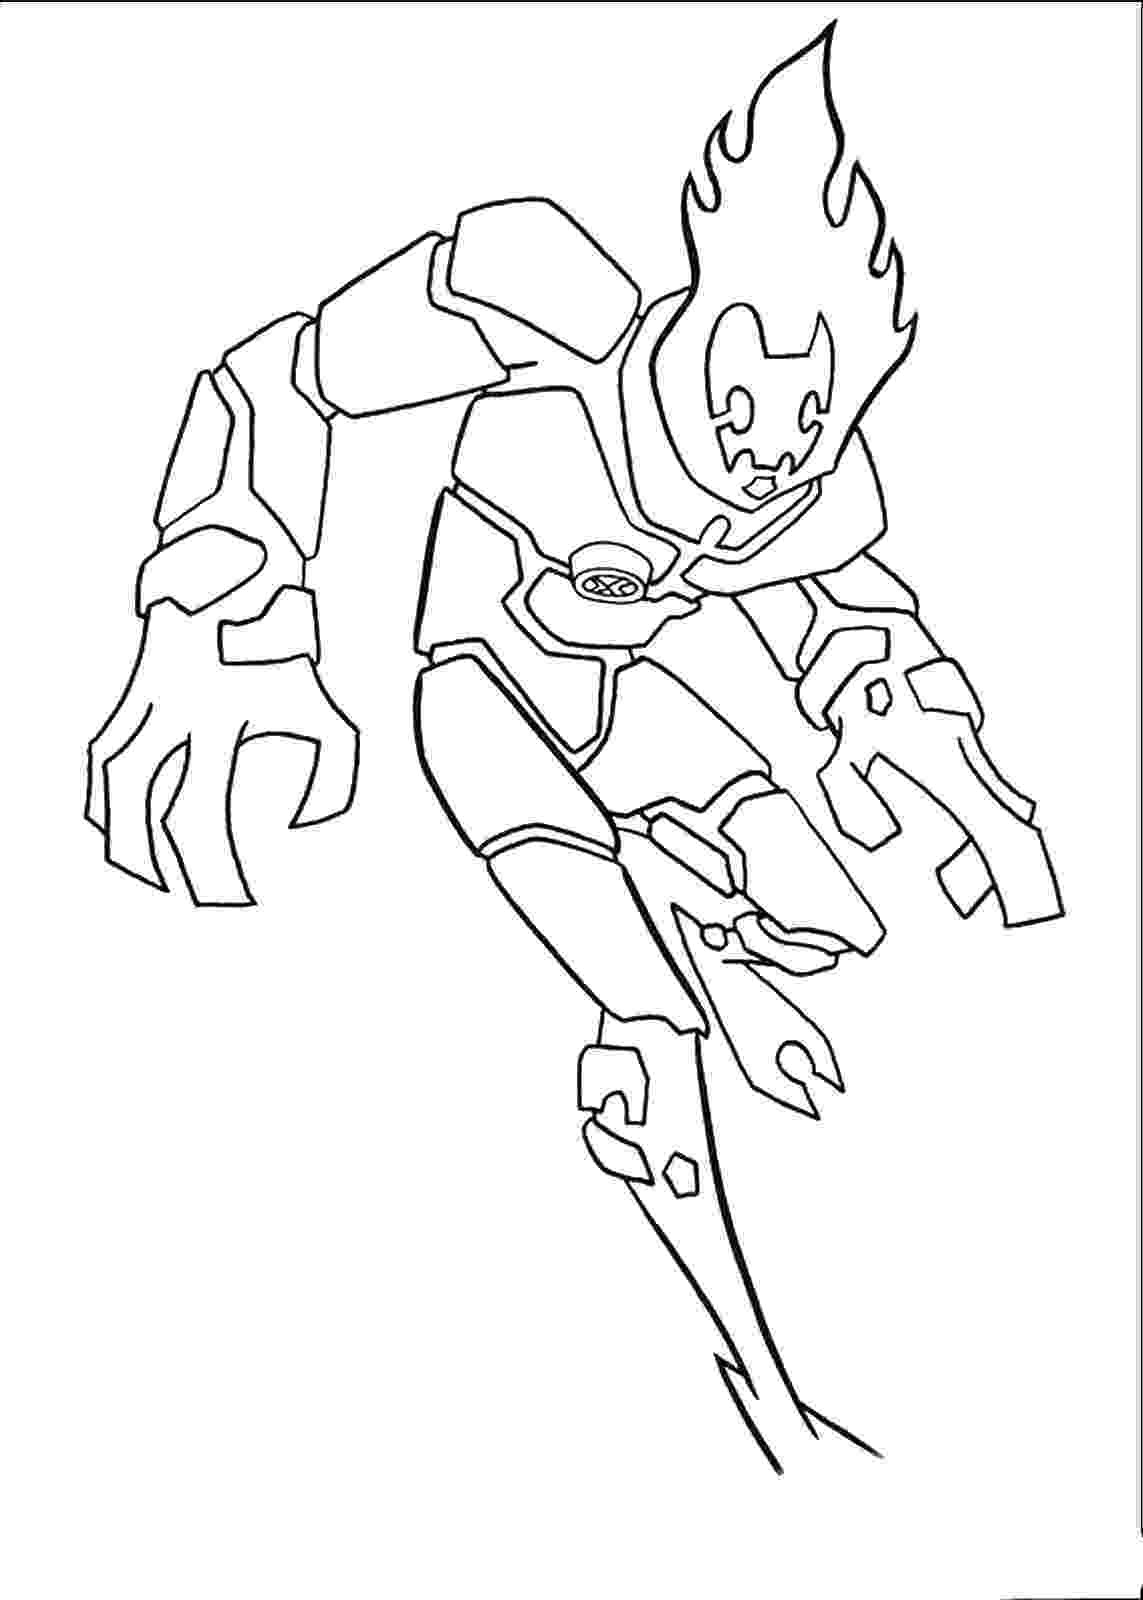 ben 10 coloring pages ben 10 alien force coloring pages fantasy coloring pages ben 10 coloring pages